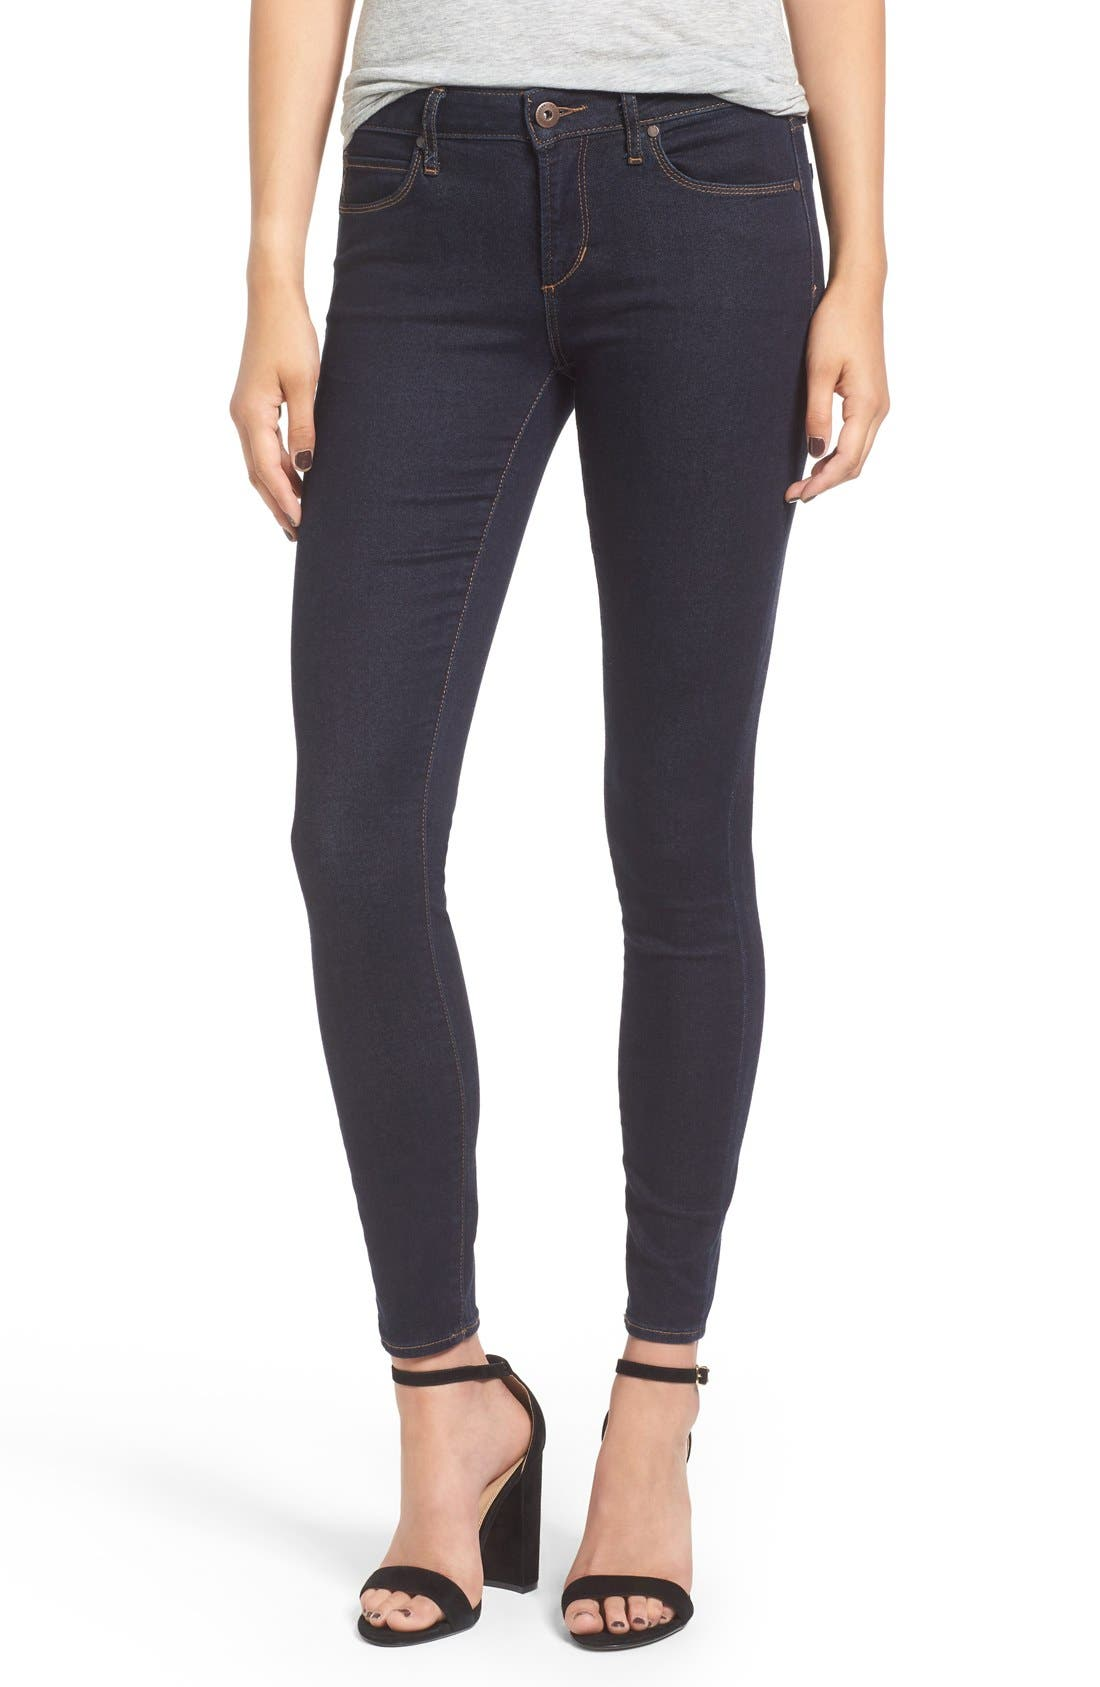 Alternate Image 1 Selected - Articles of Society 'Sarah' Skinny Jeans (Melrose)